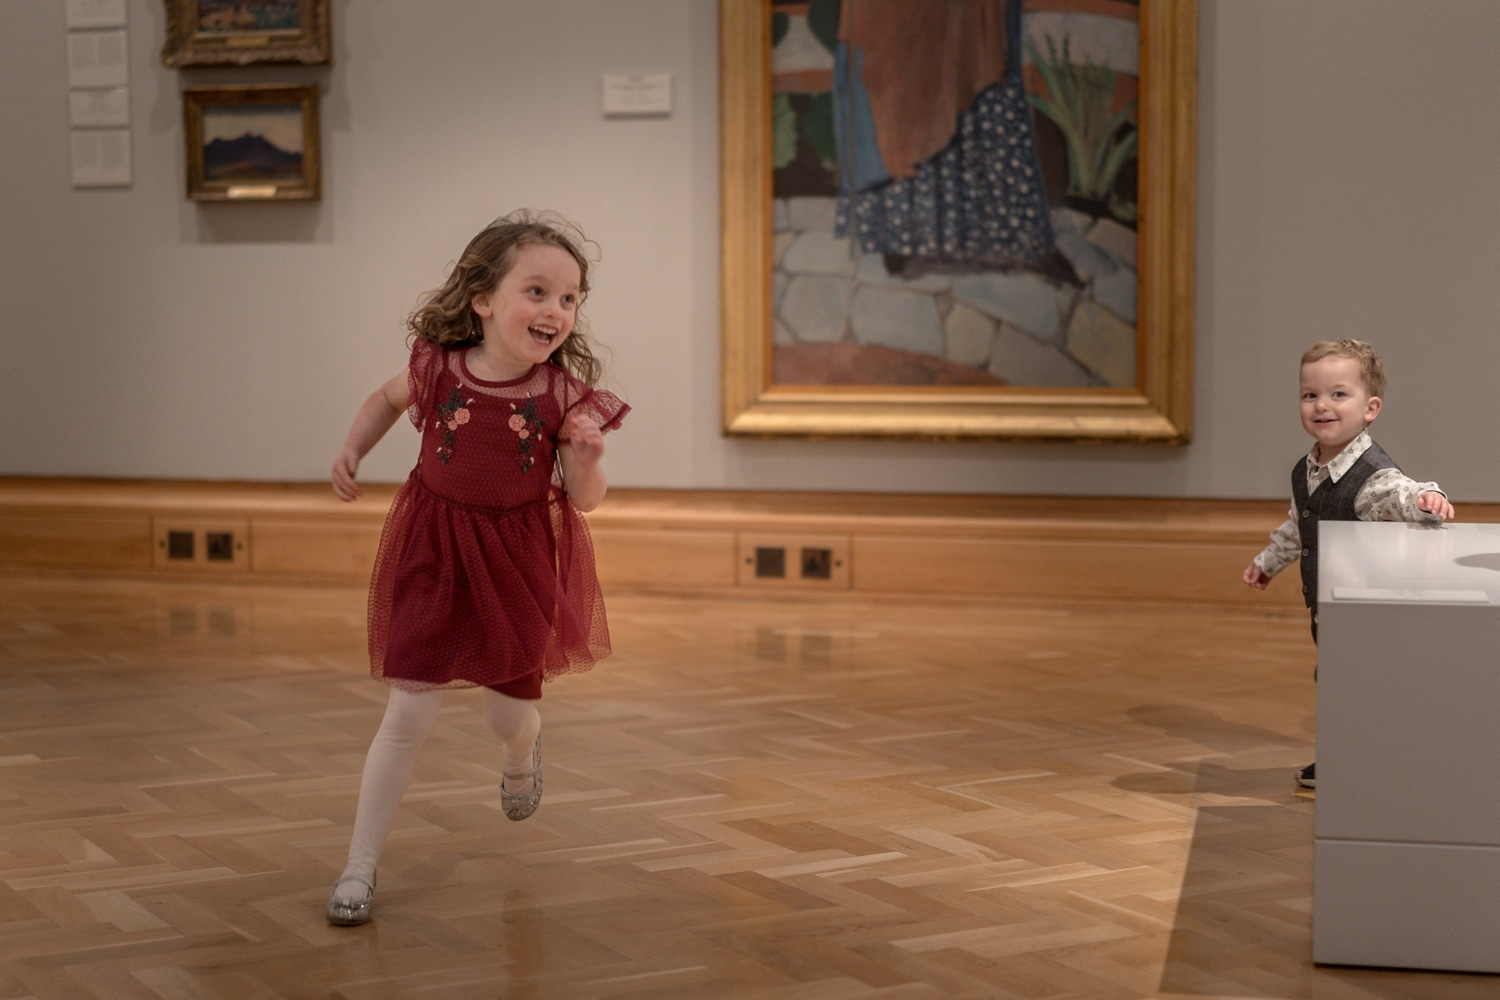 Little girls runs around Cardiff museum wedding reception